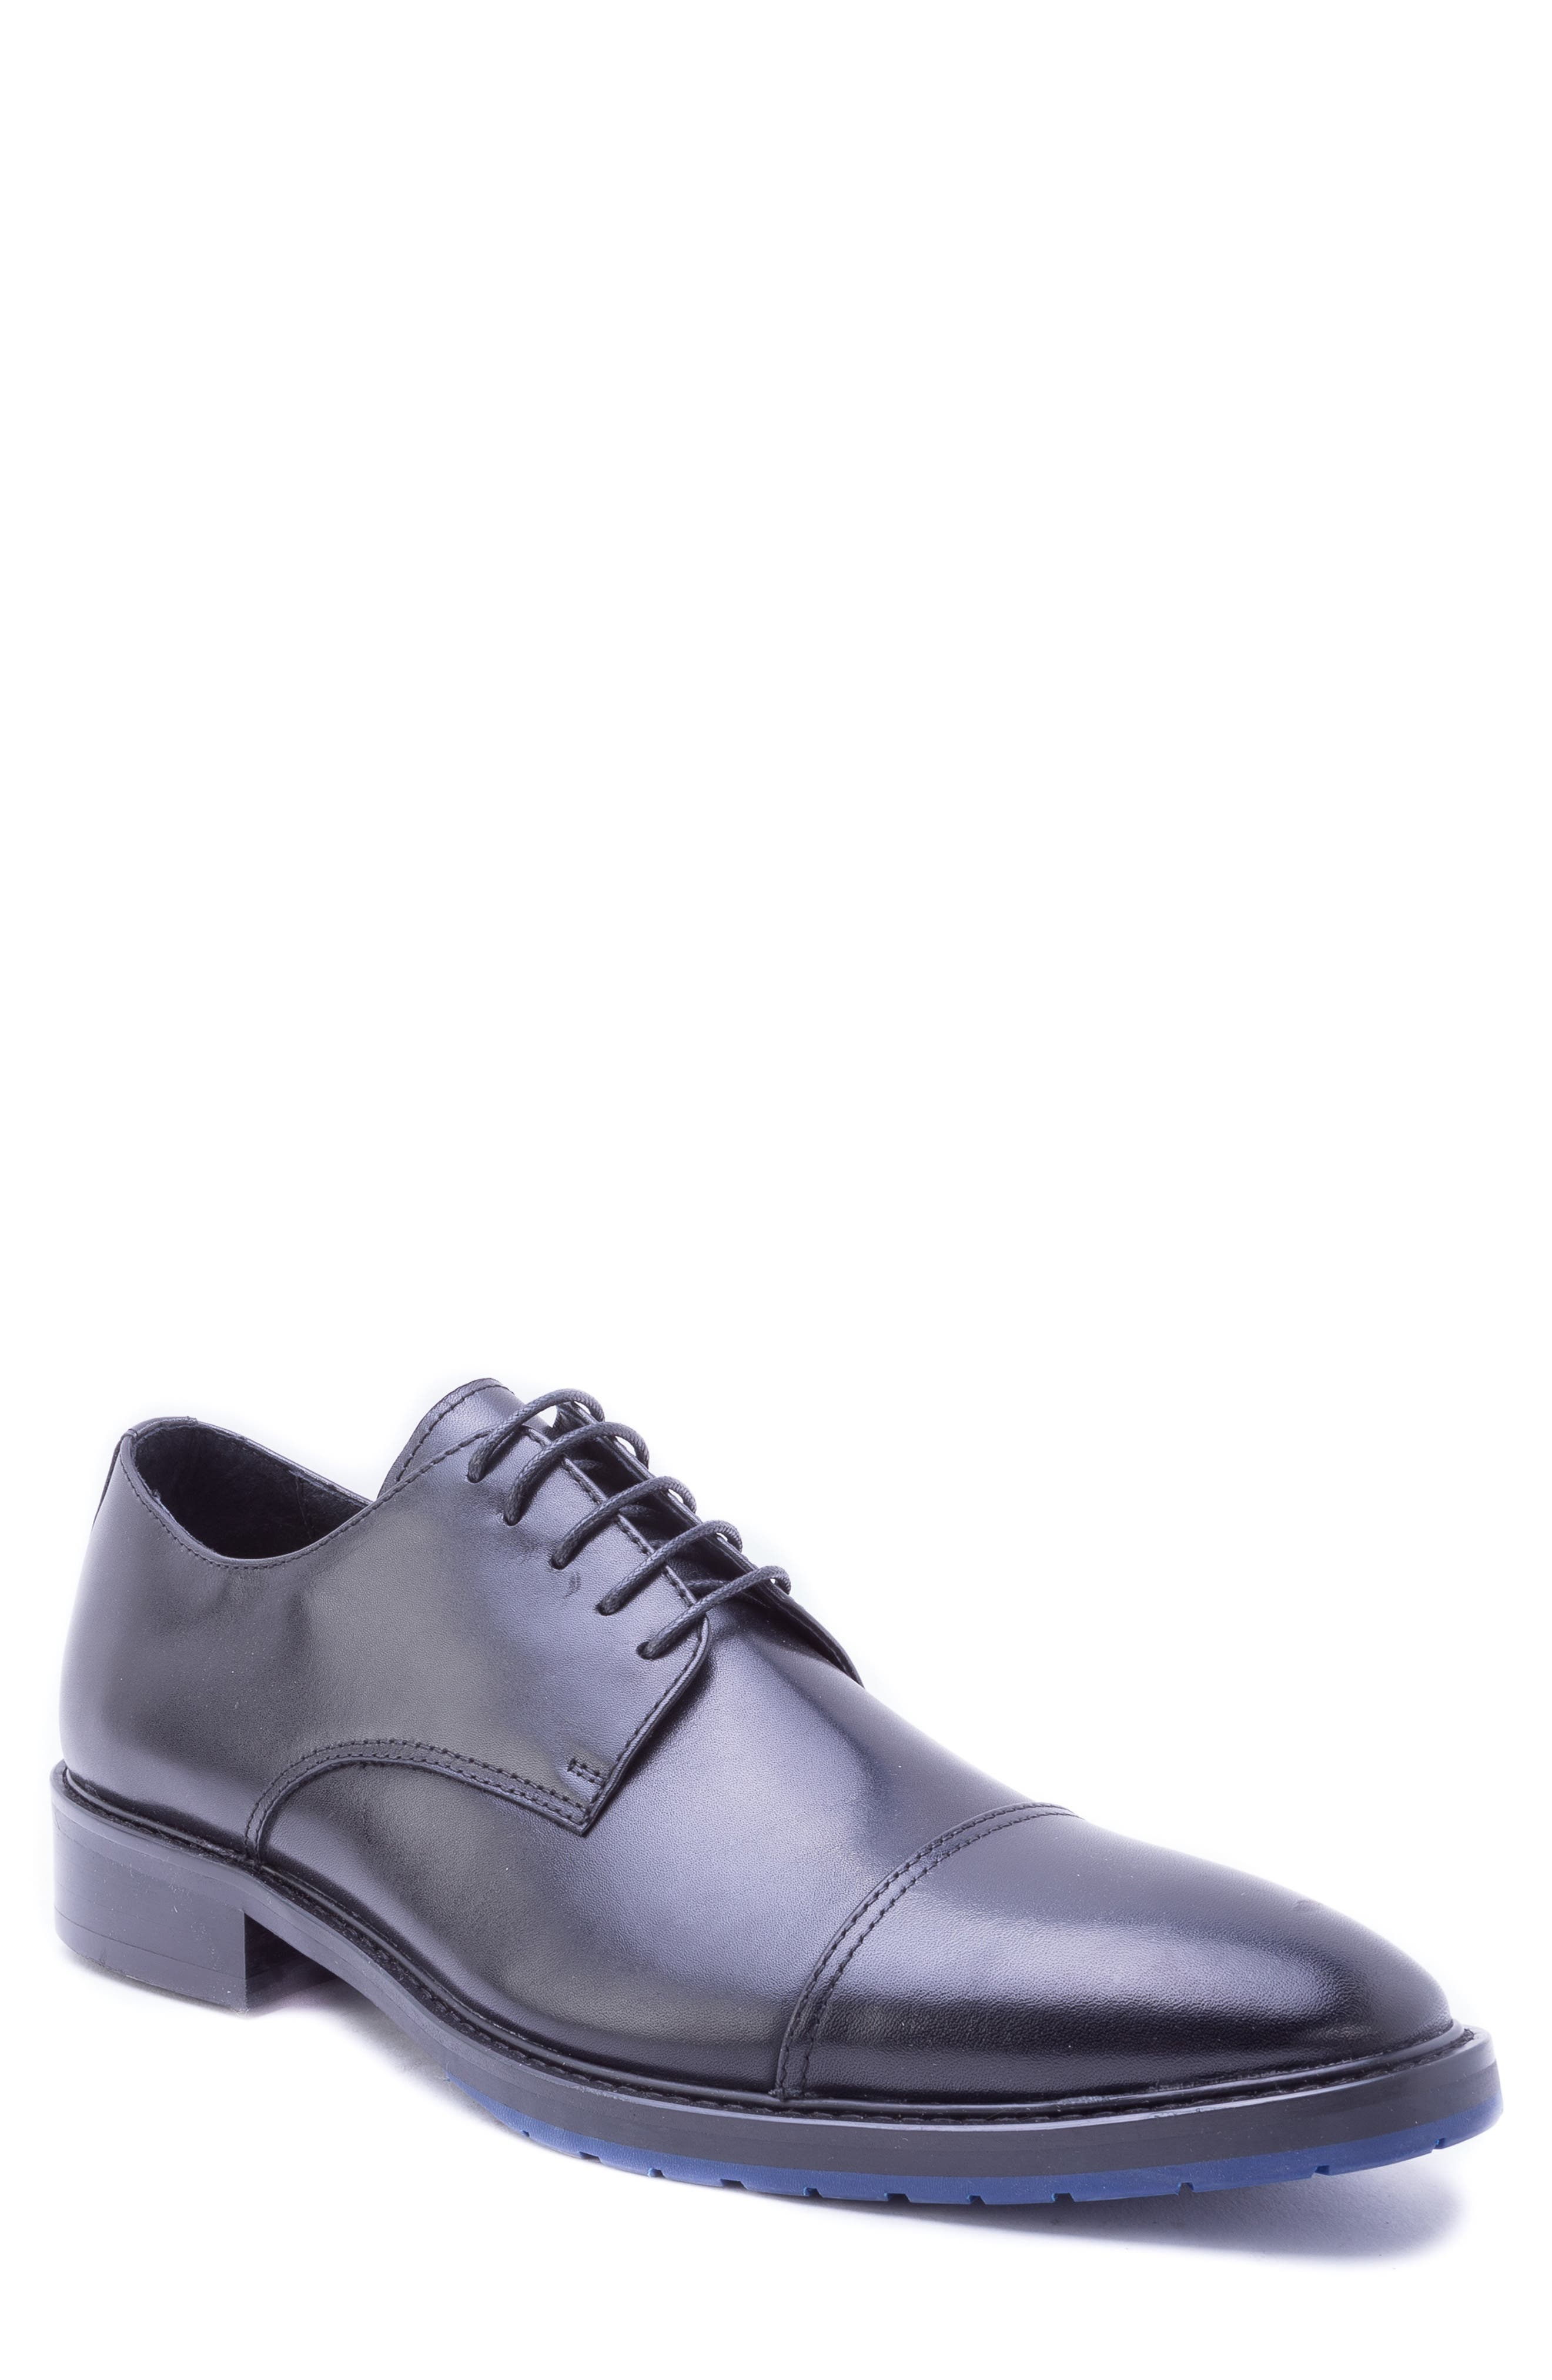 Welti Cap Toe Derby,                         Main,                         color, BLACK LEATHER